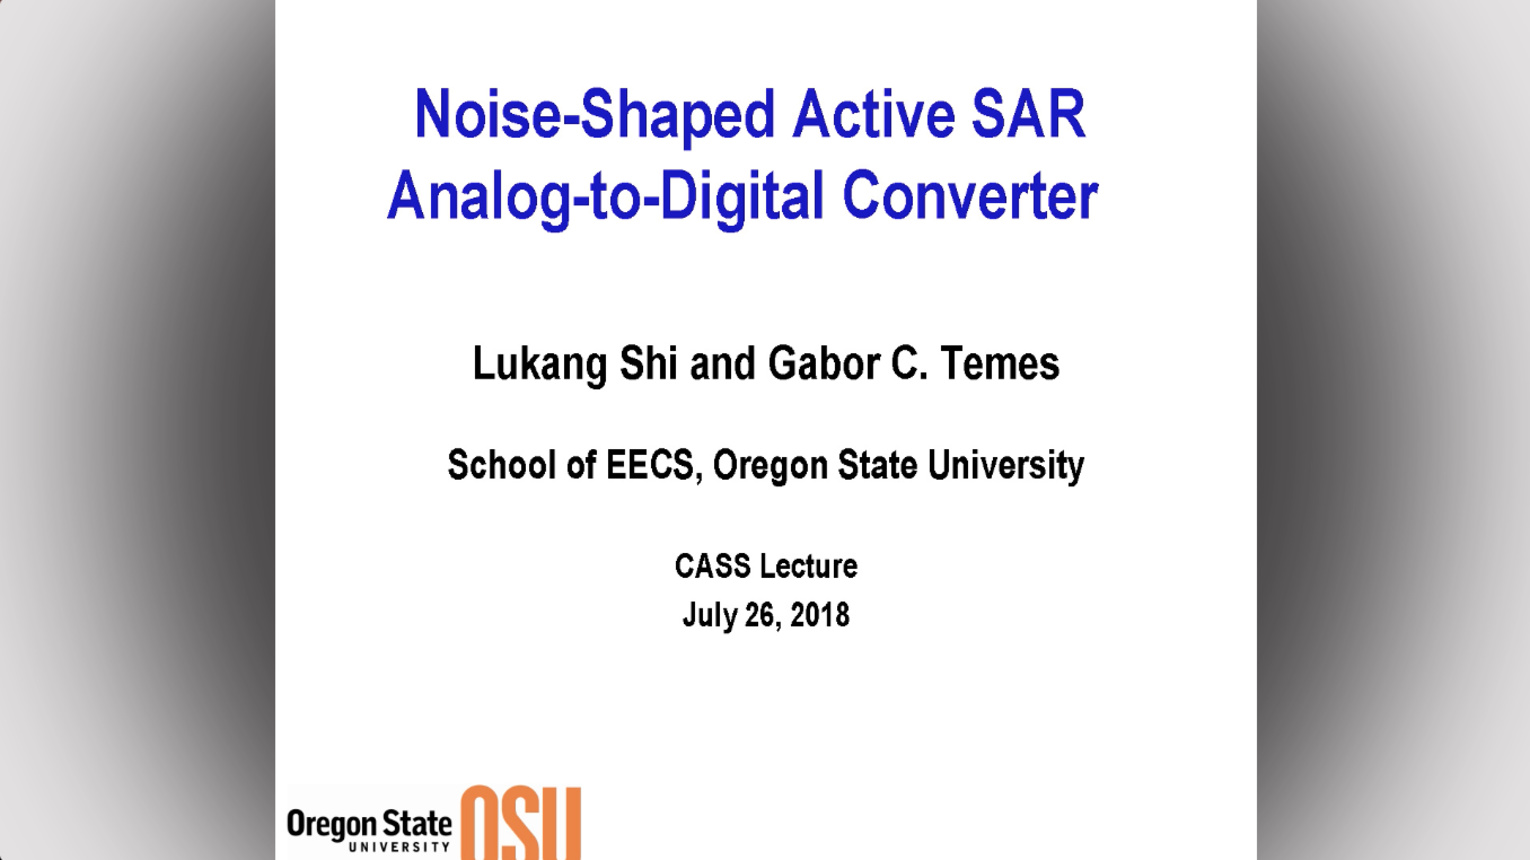 Noise-Shaped Active SAR Analog-to-Digital Converter - IEEE Circuits and Systems Society (CAS) Distinguished Lecture